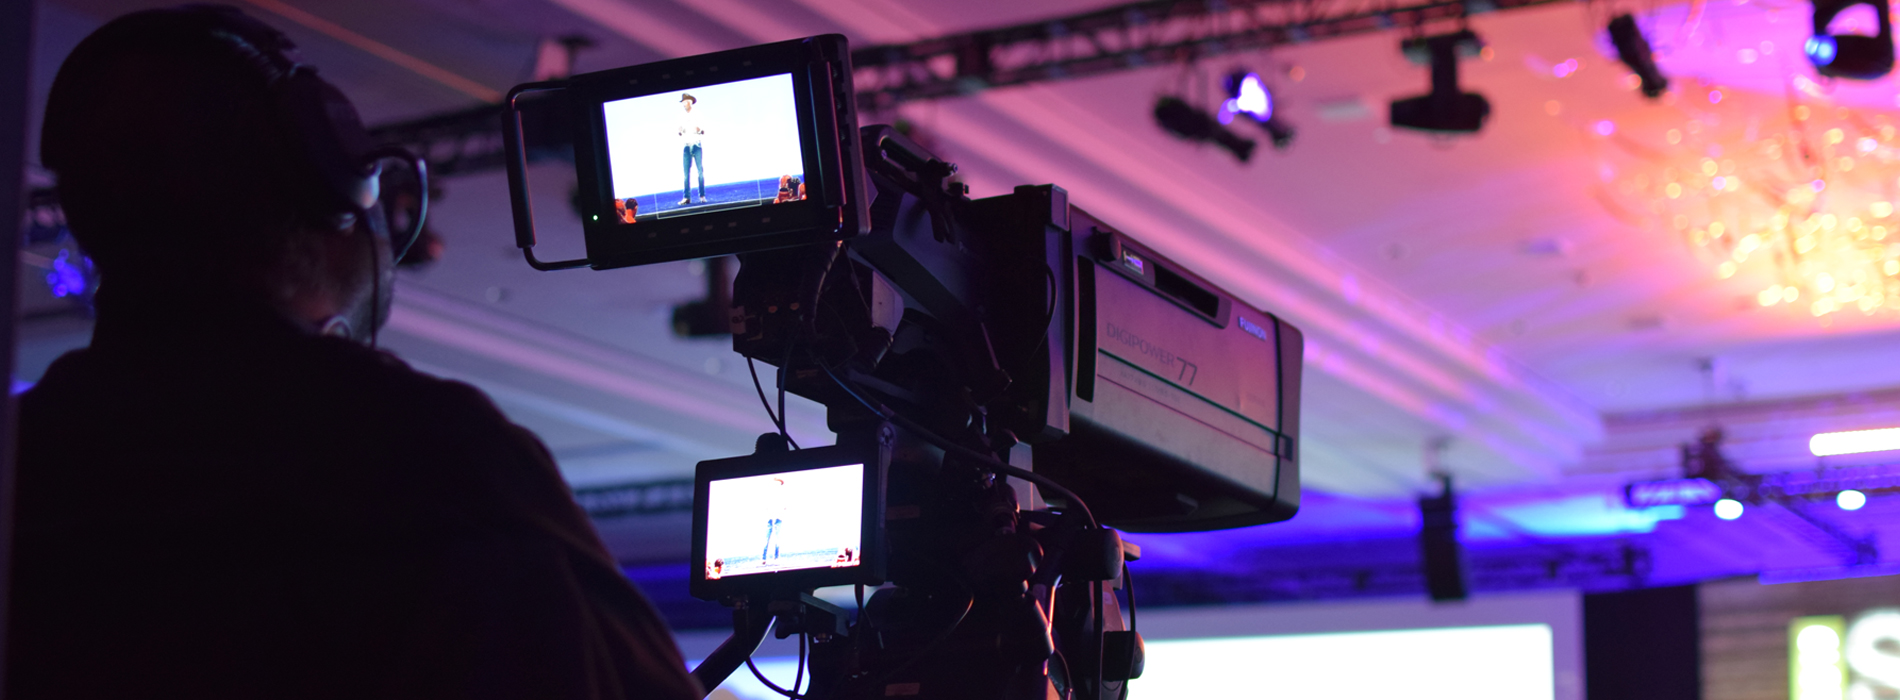 A cameraman operating a video camera and recording Dave Wessinger on Stage and SUMMIT 2019